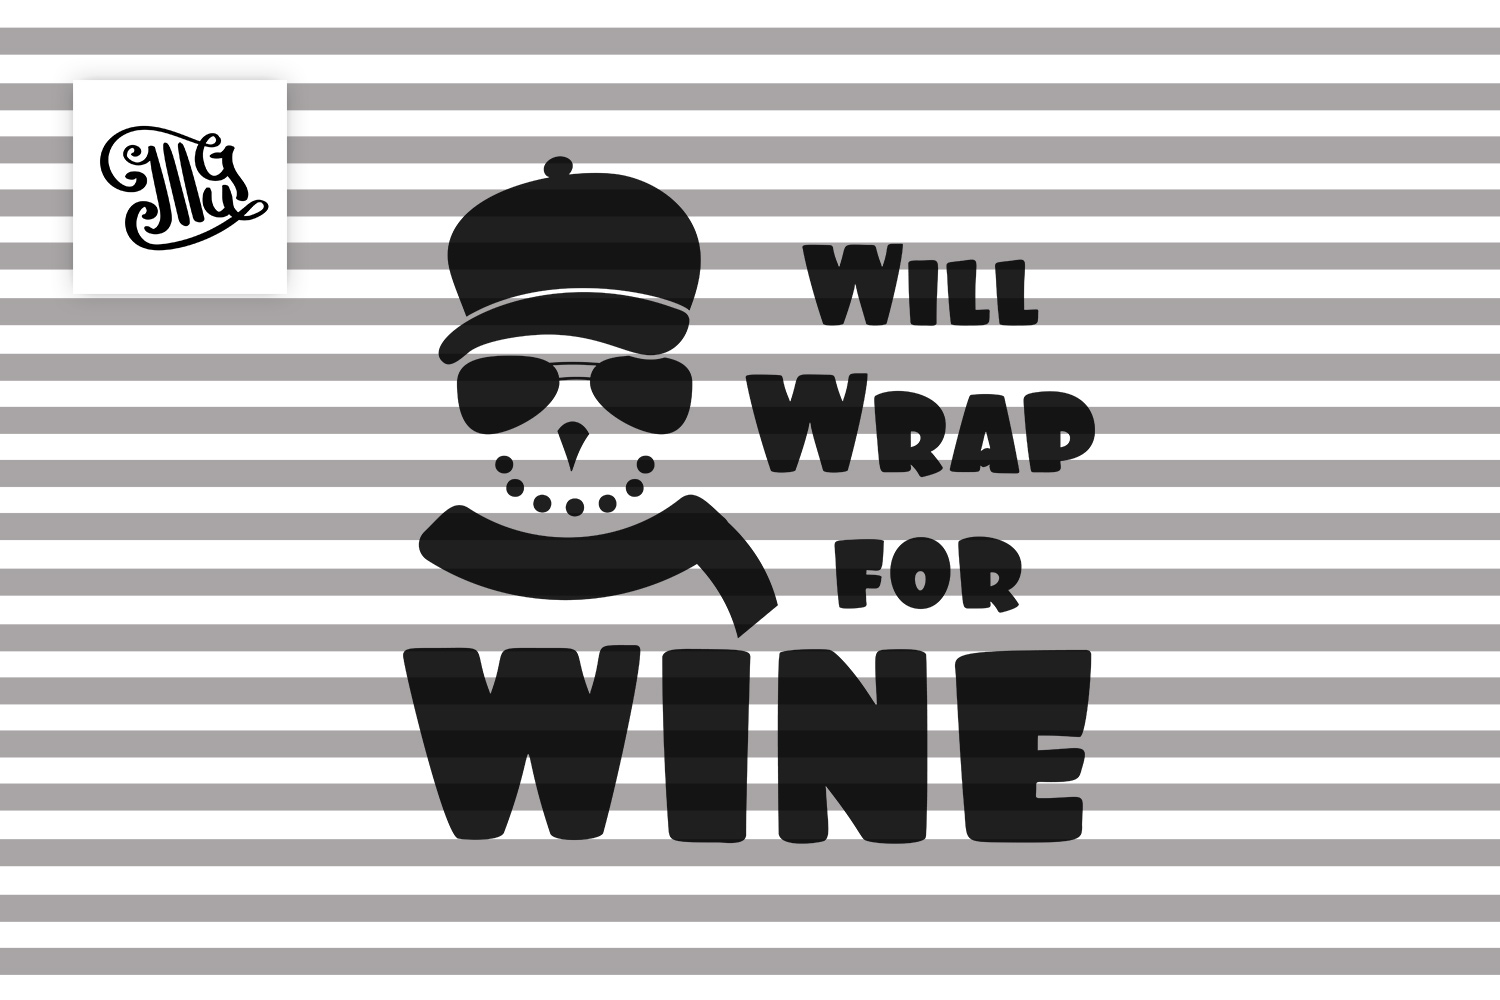 Will Wrap for wine - Christmas wine example image 2